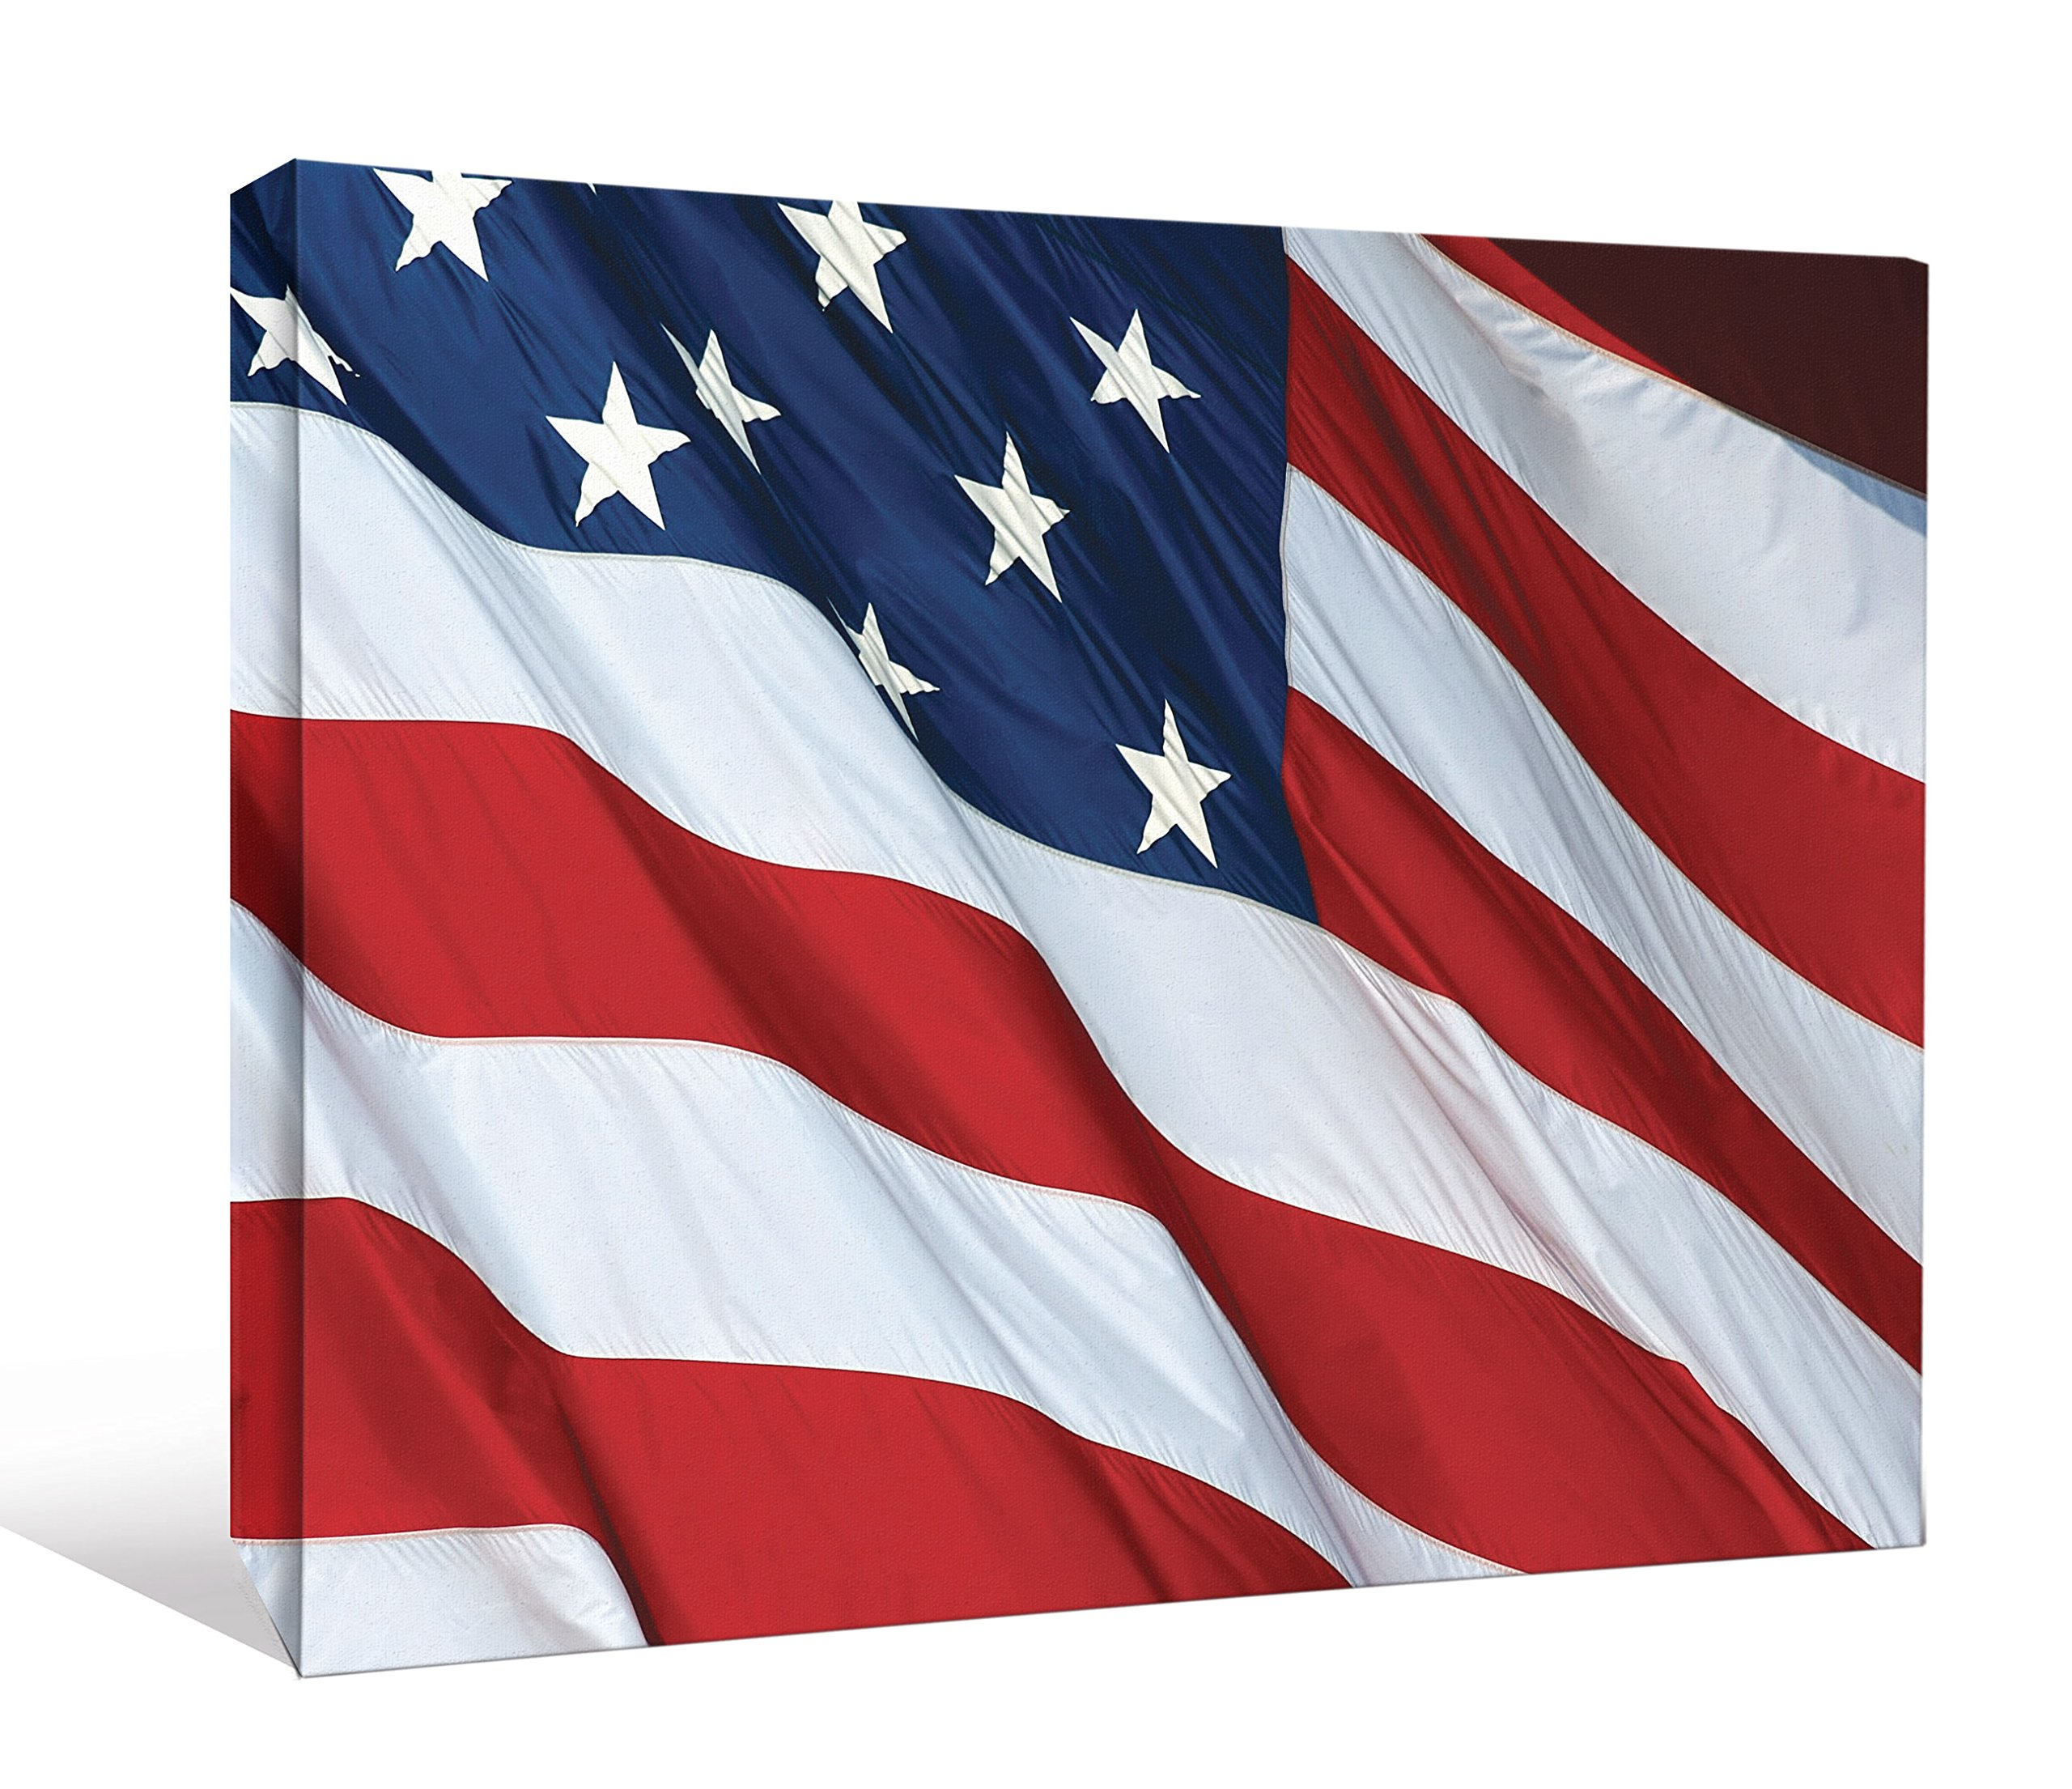 JP London DDCNV2159 Ready to Hang Feature Wall Art 2'' Thick Heavyweight Gallery Wrap Canvas God Bless America USA Flag At 60'' Wide by 40'' High by JP London